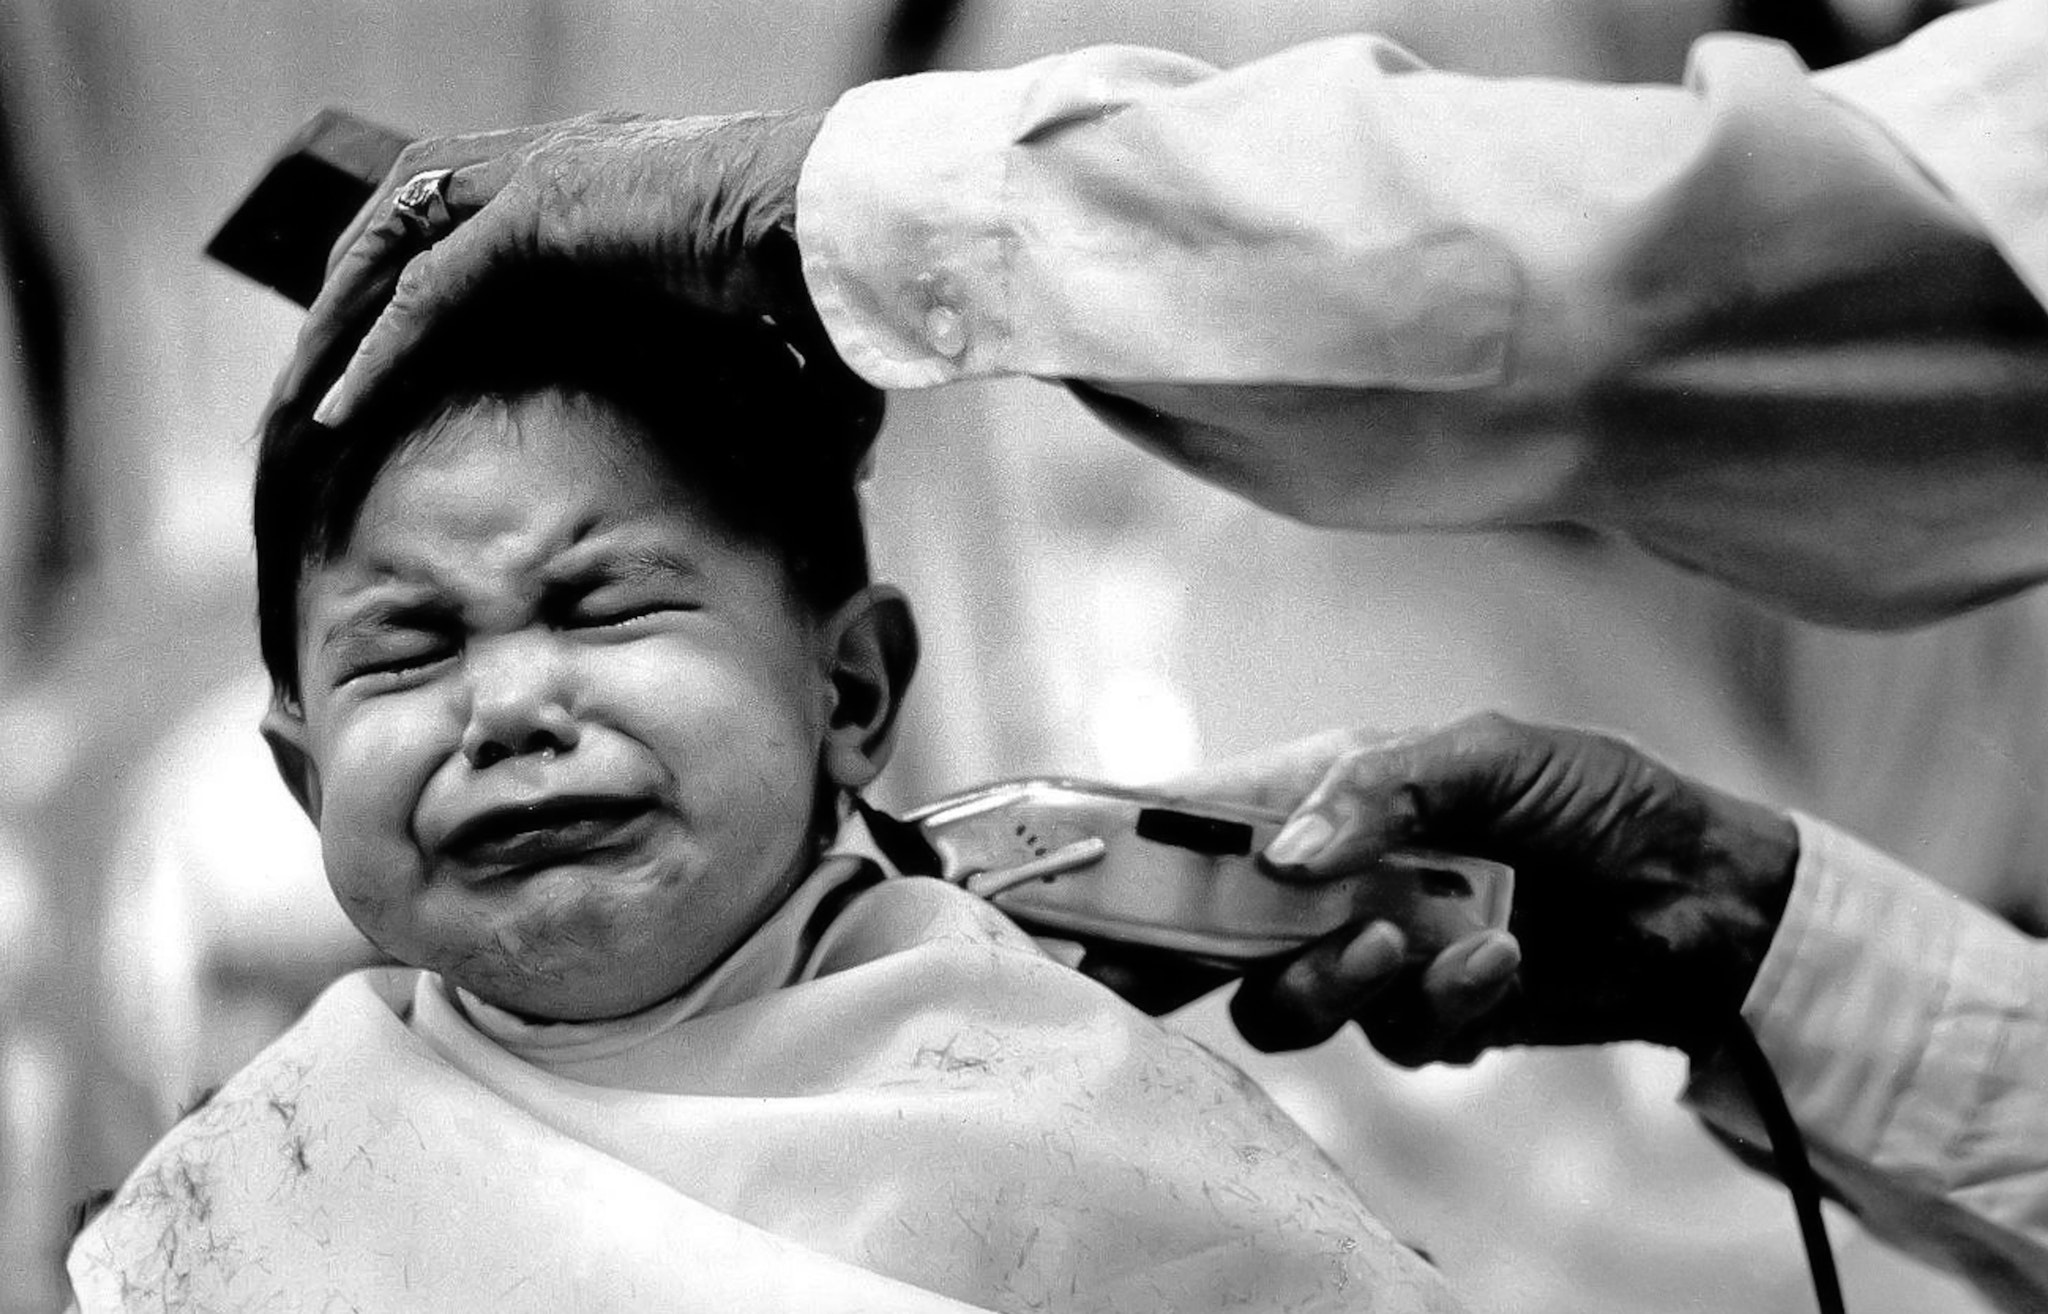 Photograph Barberism by Ari Johannesson on 500px